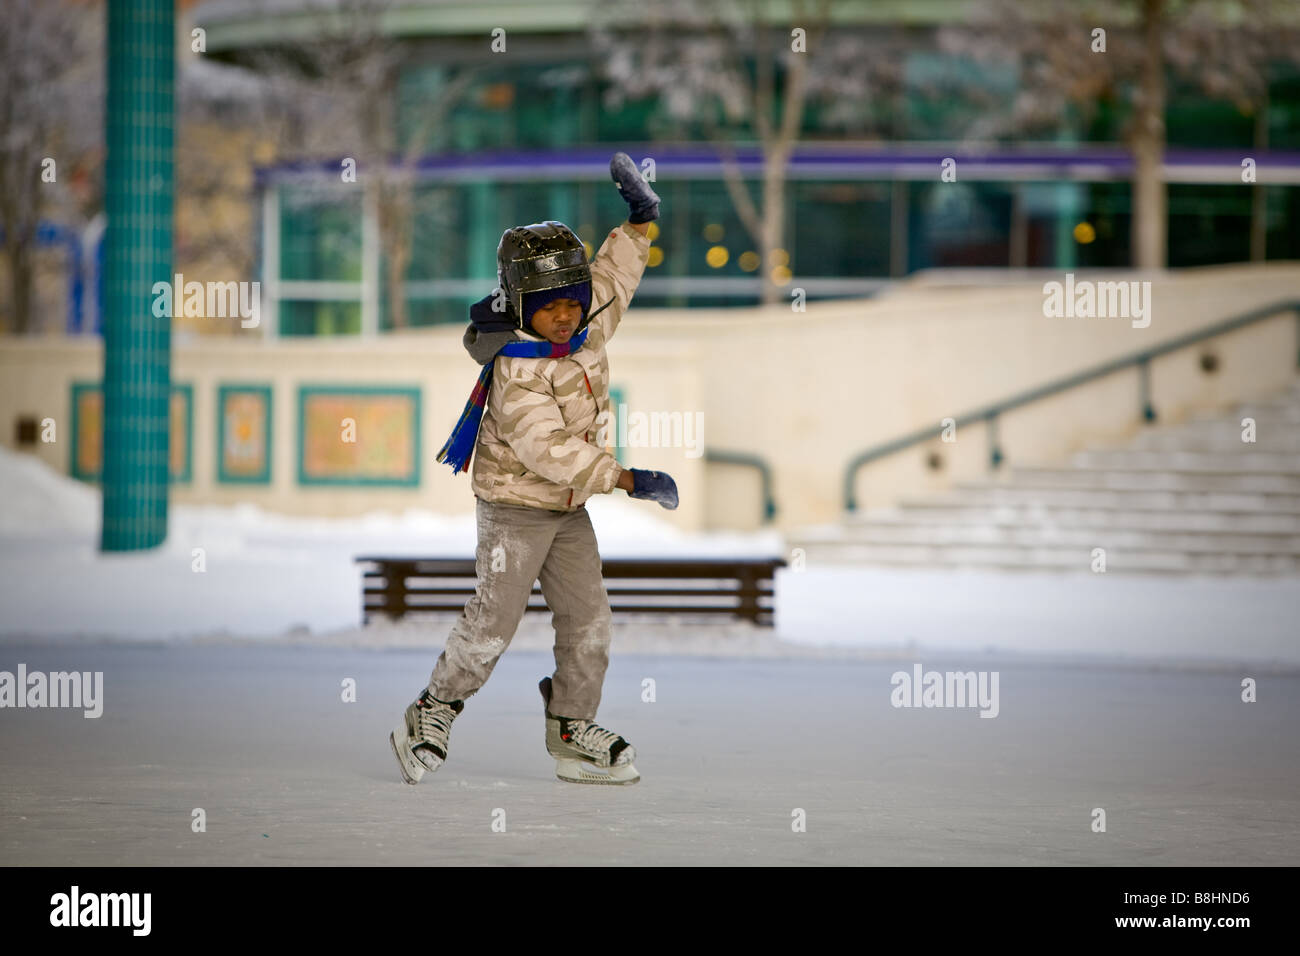 Young African American boy, learning to ice skate, outdoor rink. - Stock Image